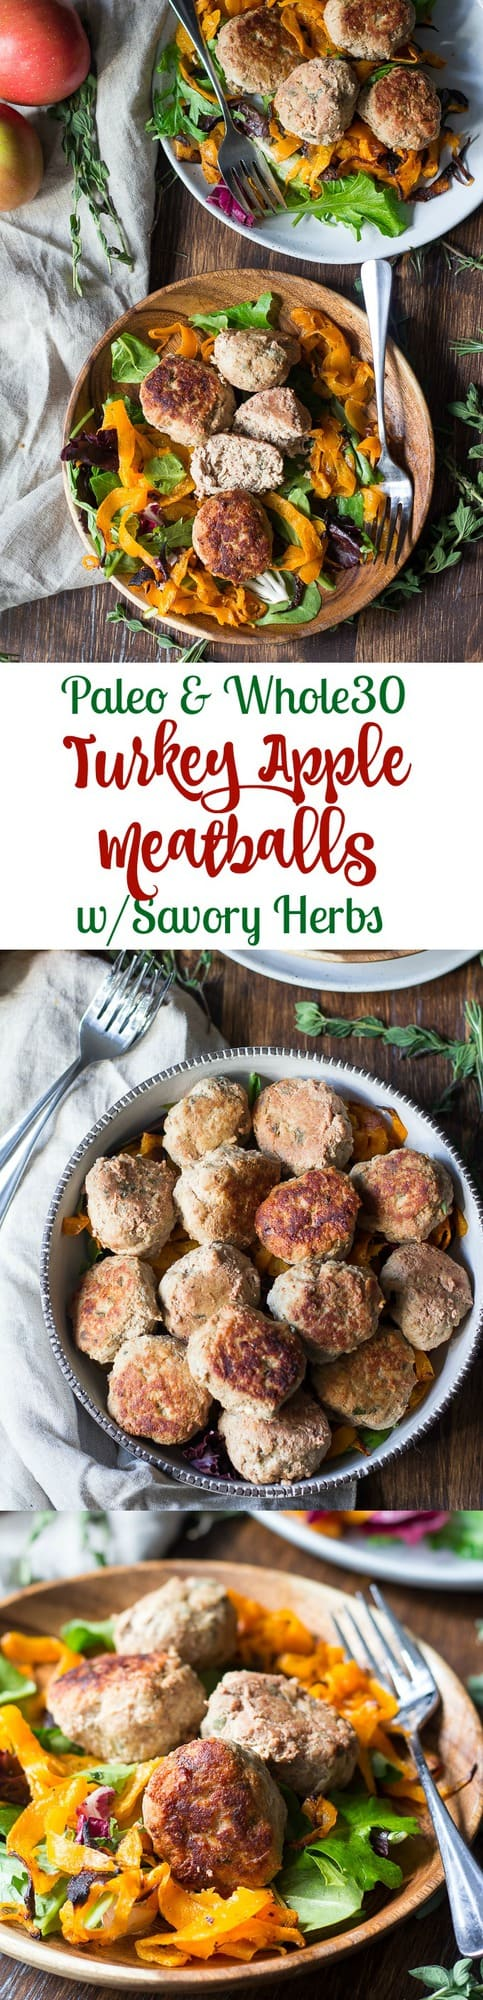 paleo-whole30-turkey-apple-meatballs-with-savory-herbs